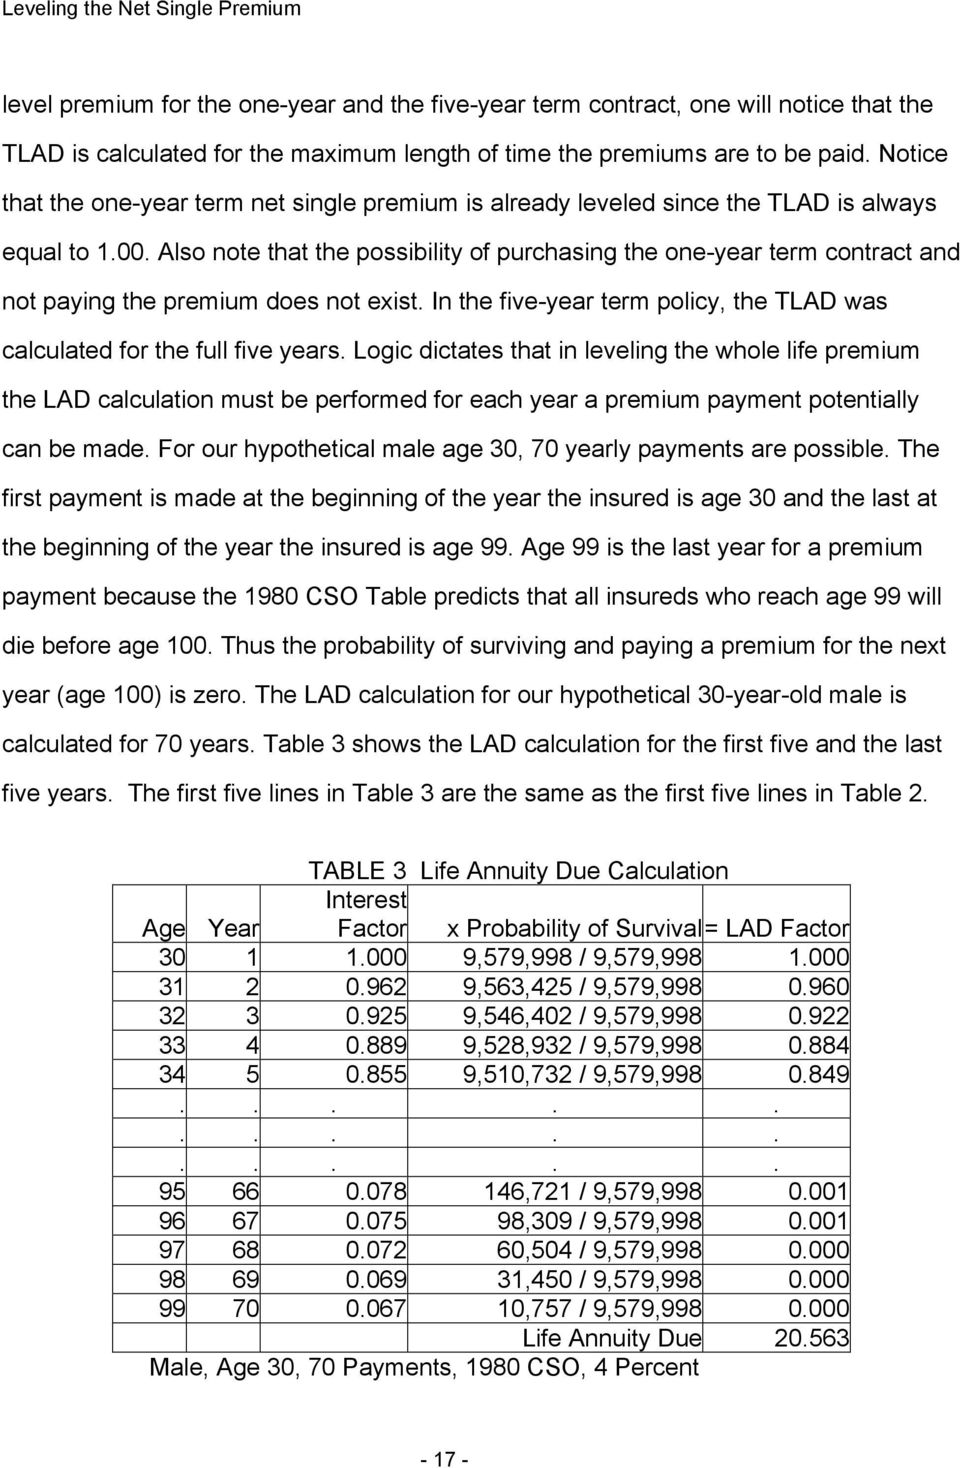 Also note that the possibility of purchasing the one-year term contract and not paying the premium does not exist. In the five-year term policy, the TLAD was calculated for the full five years.